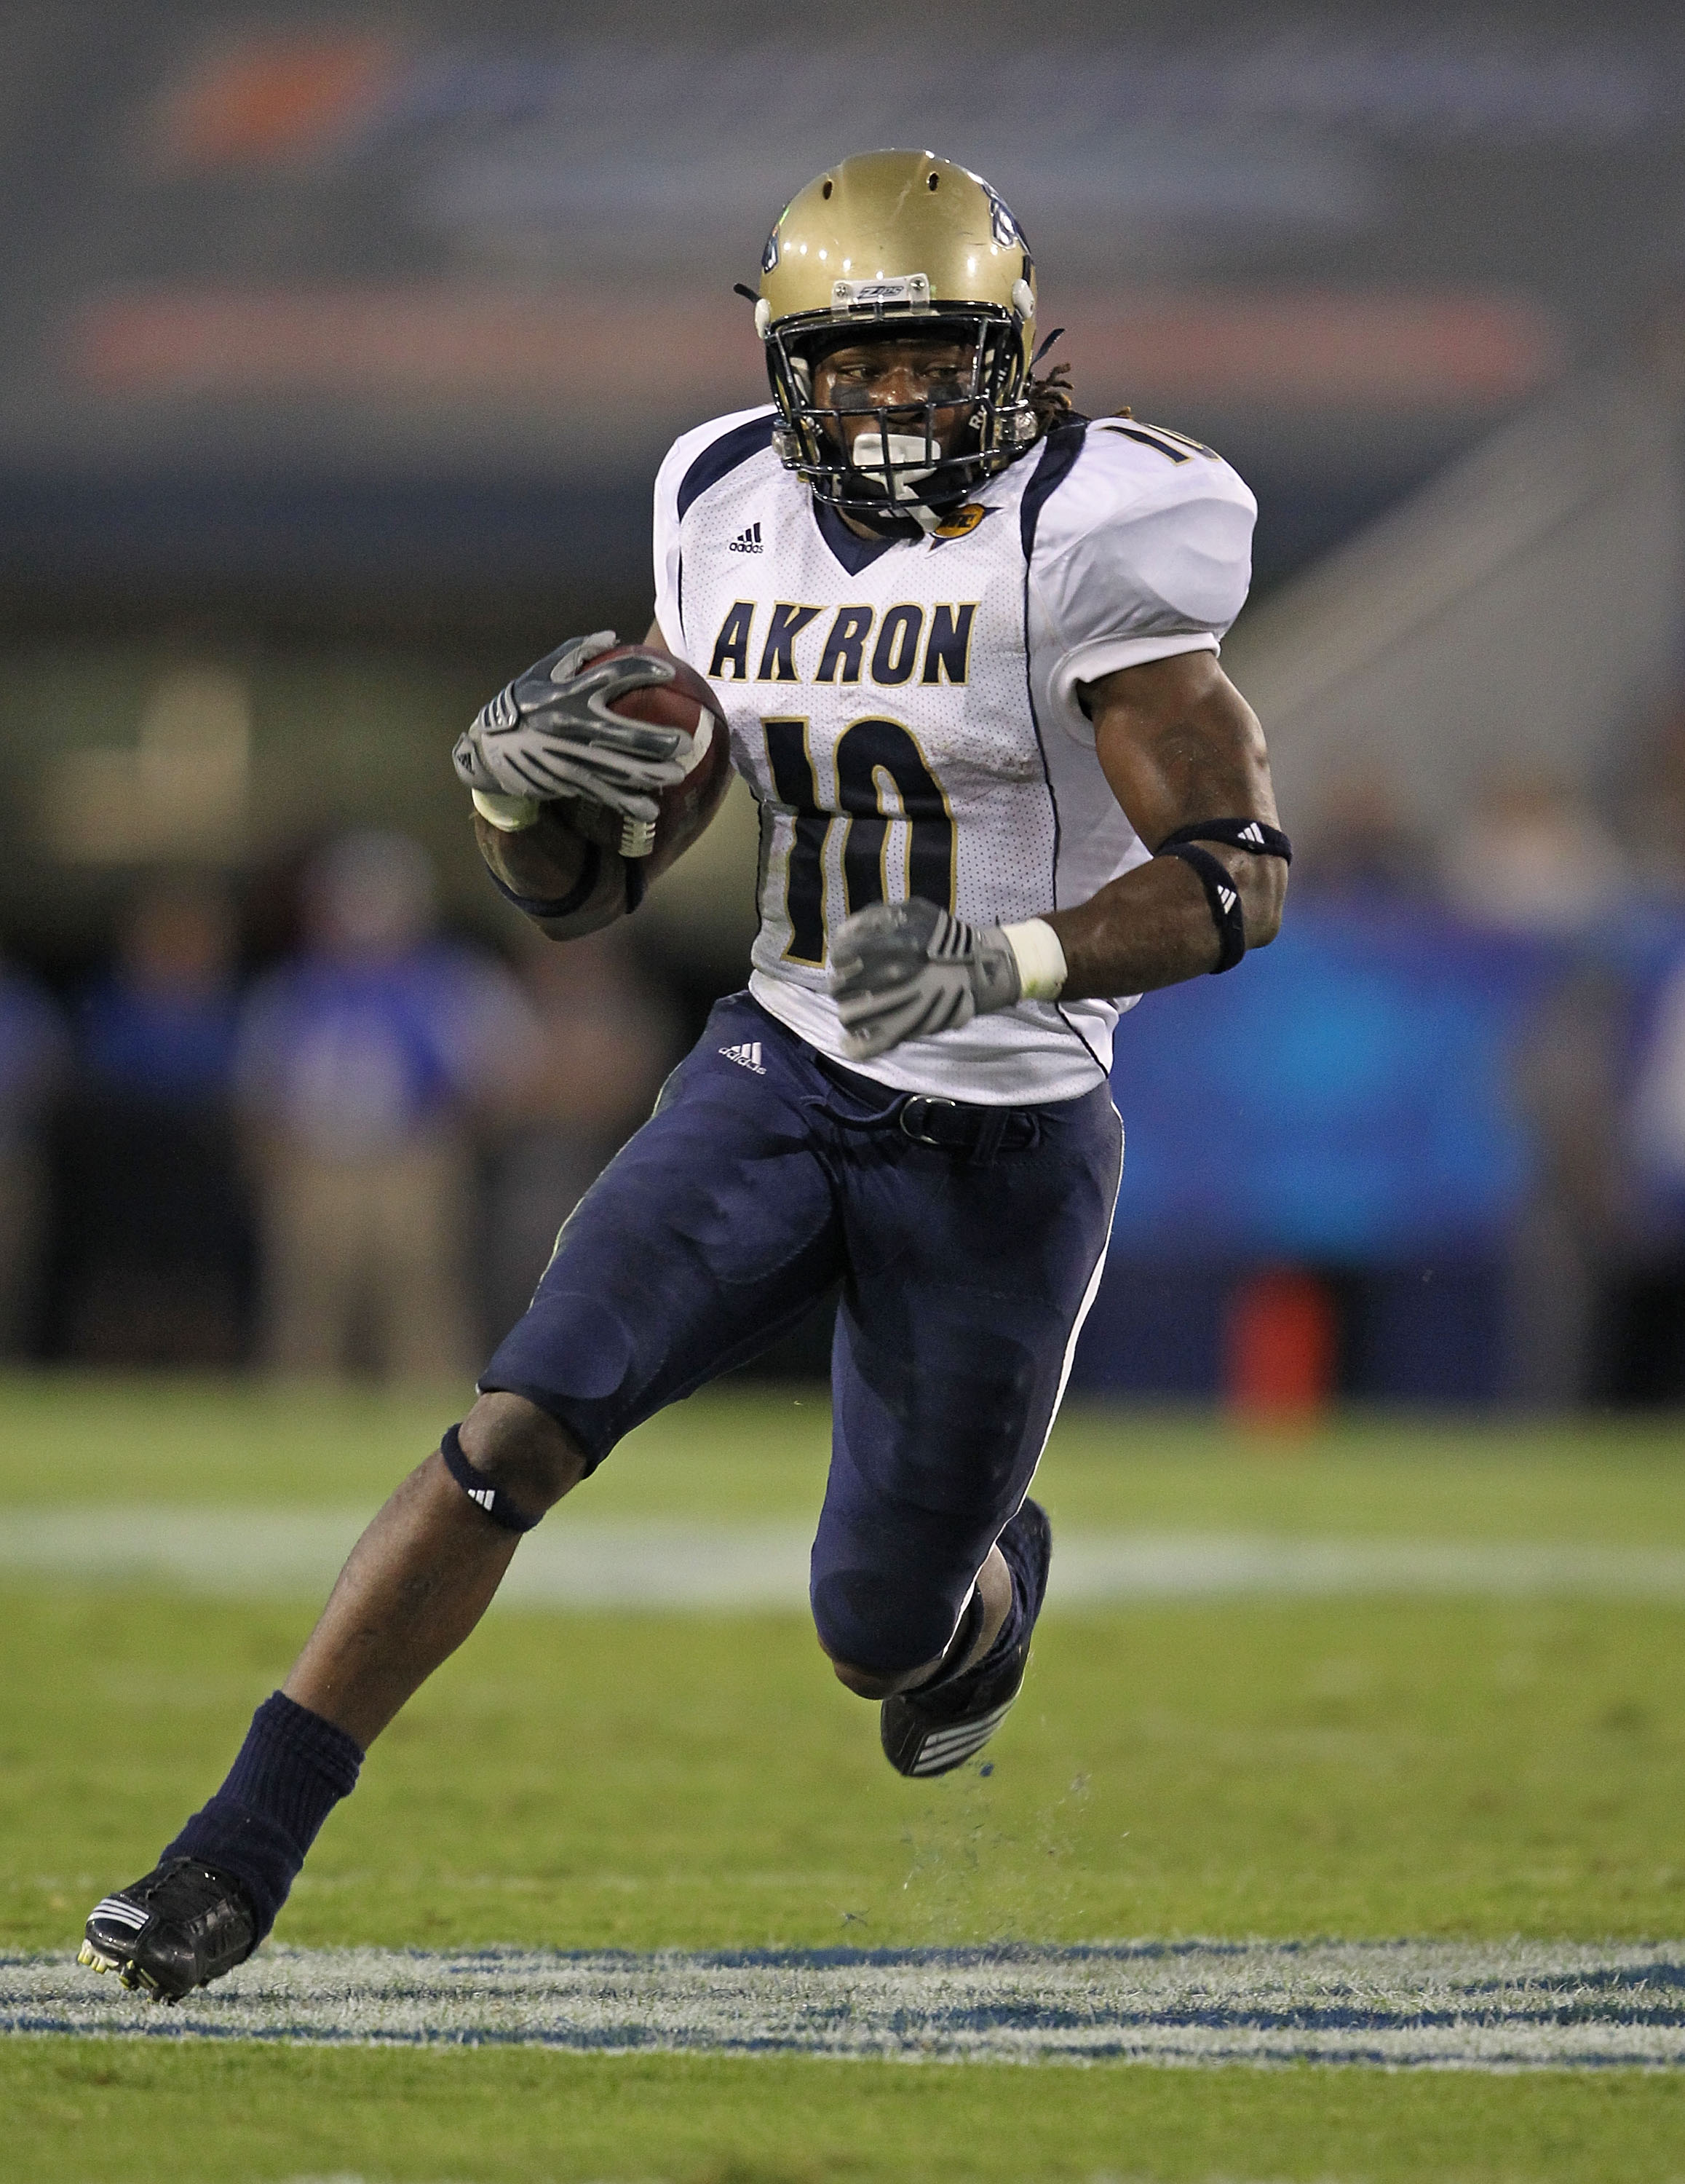 LEXINGTON, KY - SEPTEMBER 18:  Alex Allen #10 of the Akron Zips runs with the ball during the game against the Kentucky Wildcats at Commonwealth Stadium on September 18, 2010 in Lexington, Kentucky.  (Photo by Andy Lyons/Getty Images)